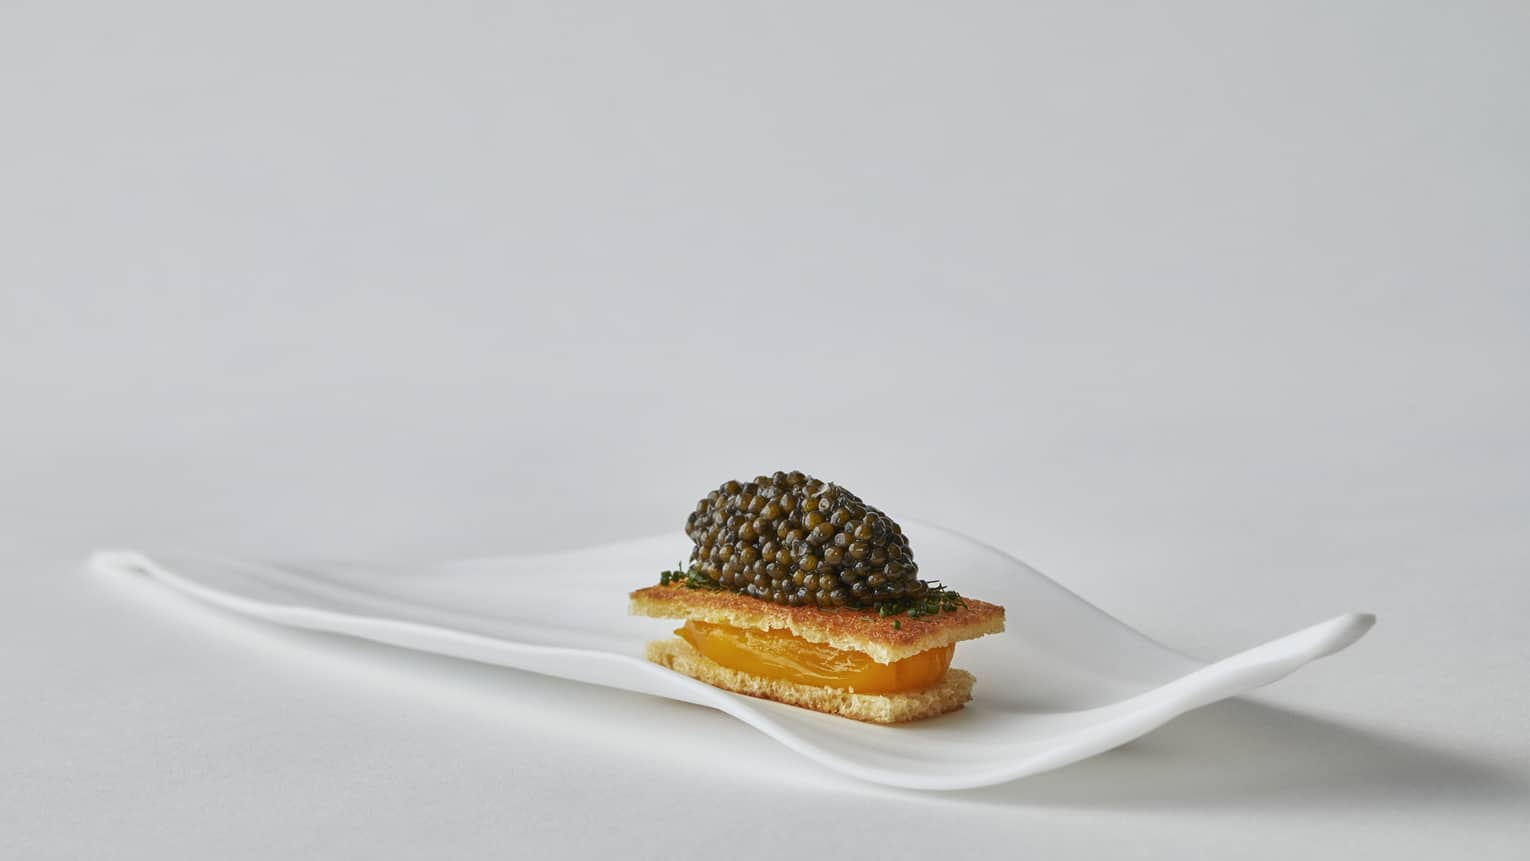 Two crackers with orange filling in between topped with caviar